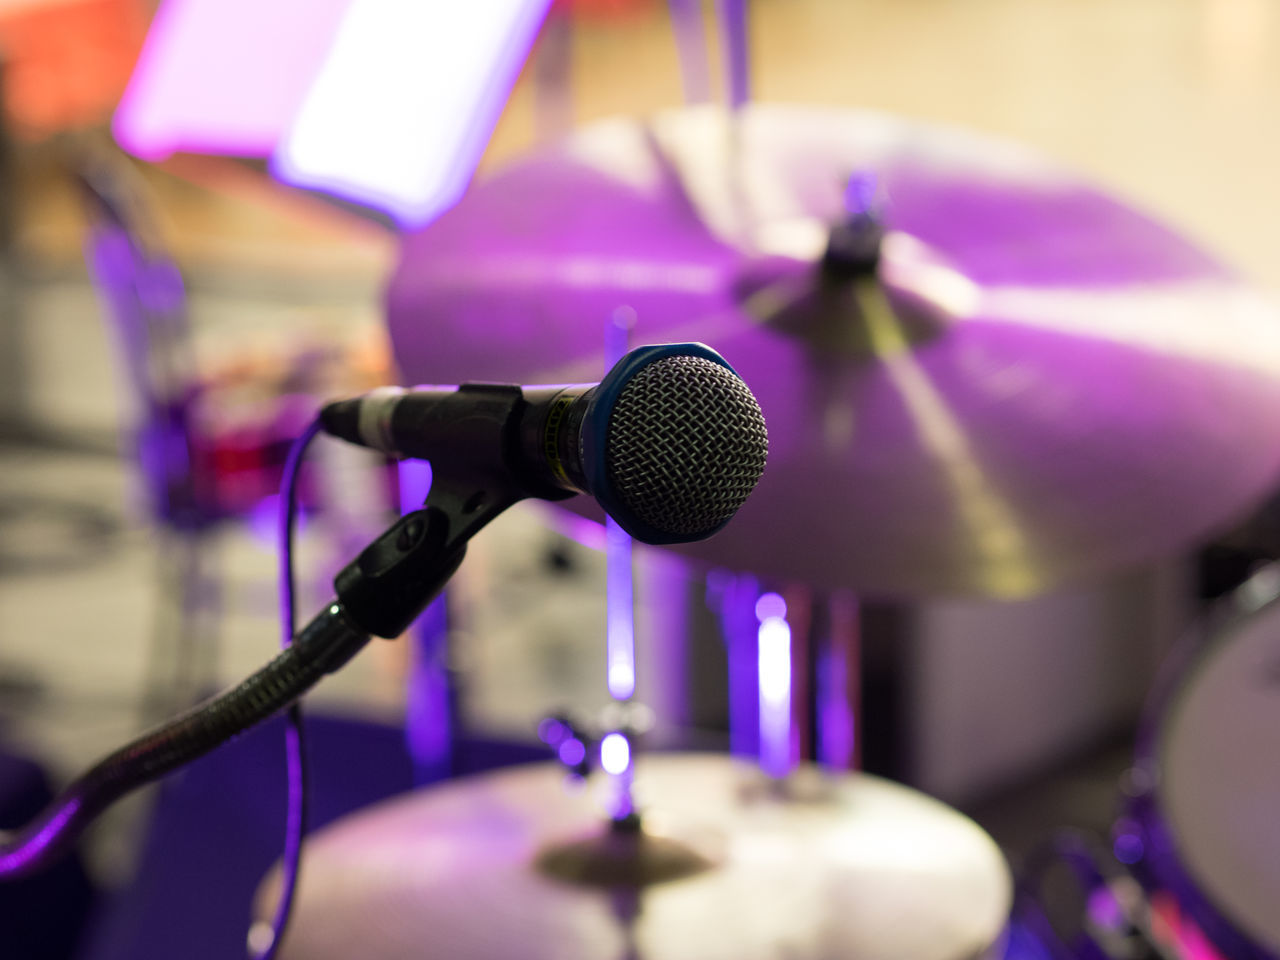 Close-up Day Indoors  Microphone Microphone Stand Music No People Performance Public Speaker Recording Studio Sound Recording Equipment Speech Studio Technology